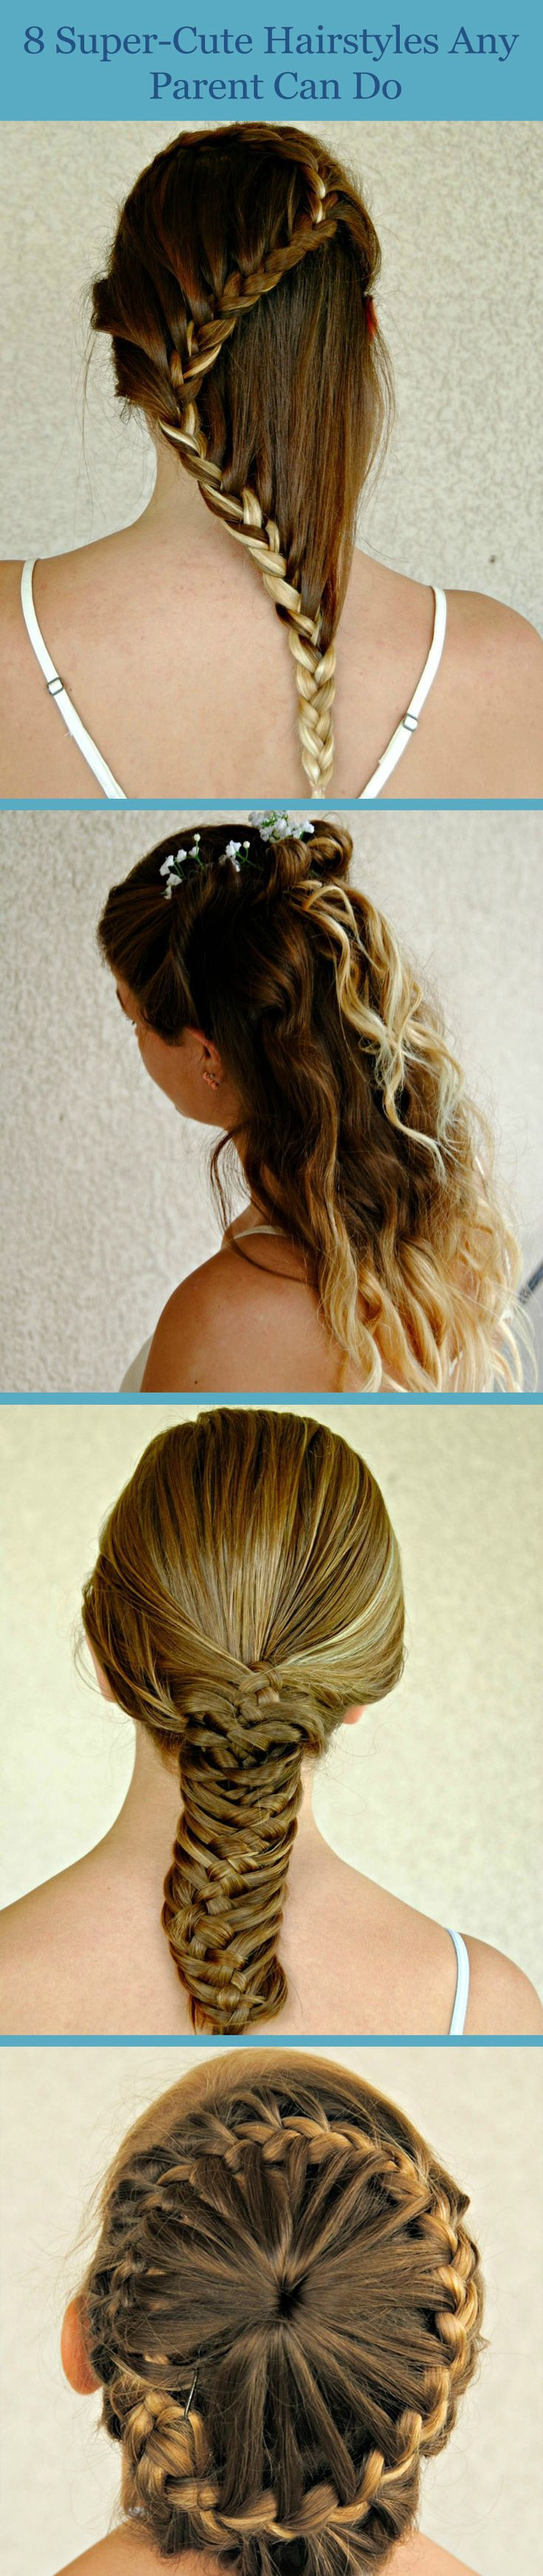 Best ideas about Simple Hairstyle For Kids . Save or Pin New hairstyles Easy kid hairstyles and Hairstyles on Now.